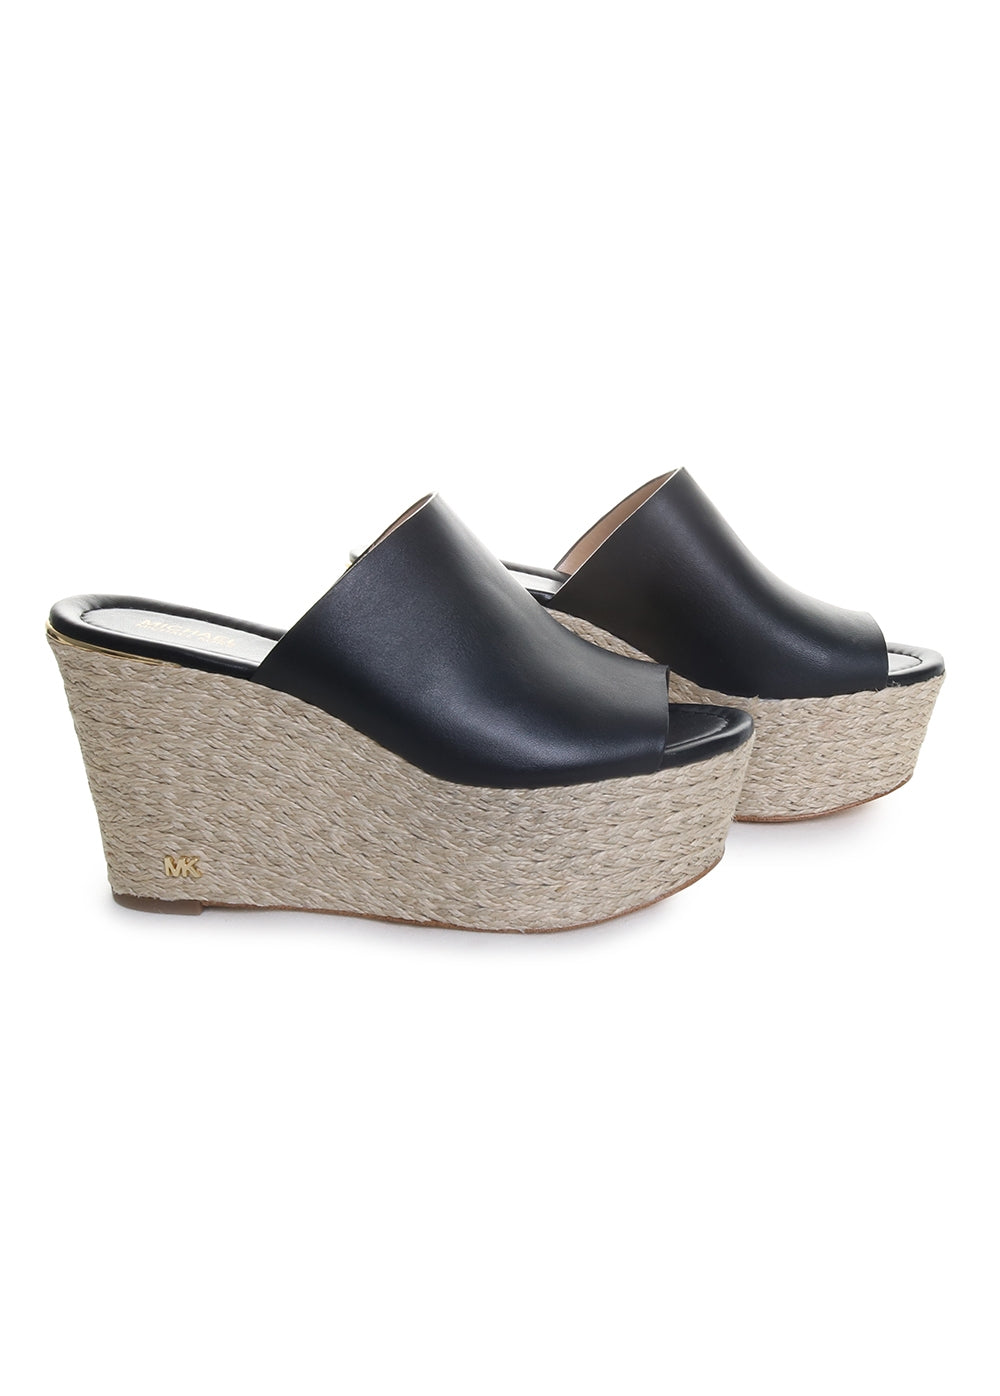 Cunningham Leather Woven Open Toe Wedges in Black